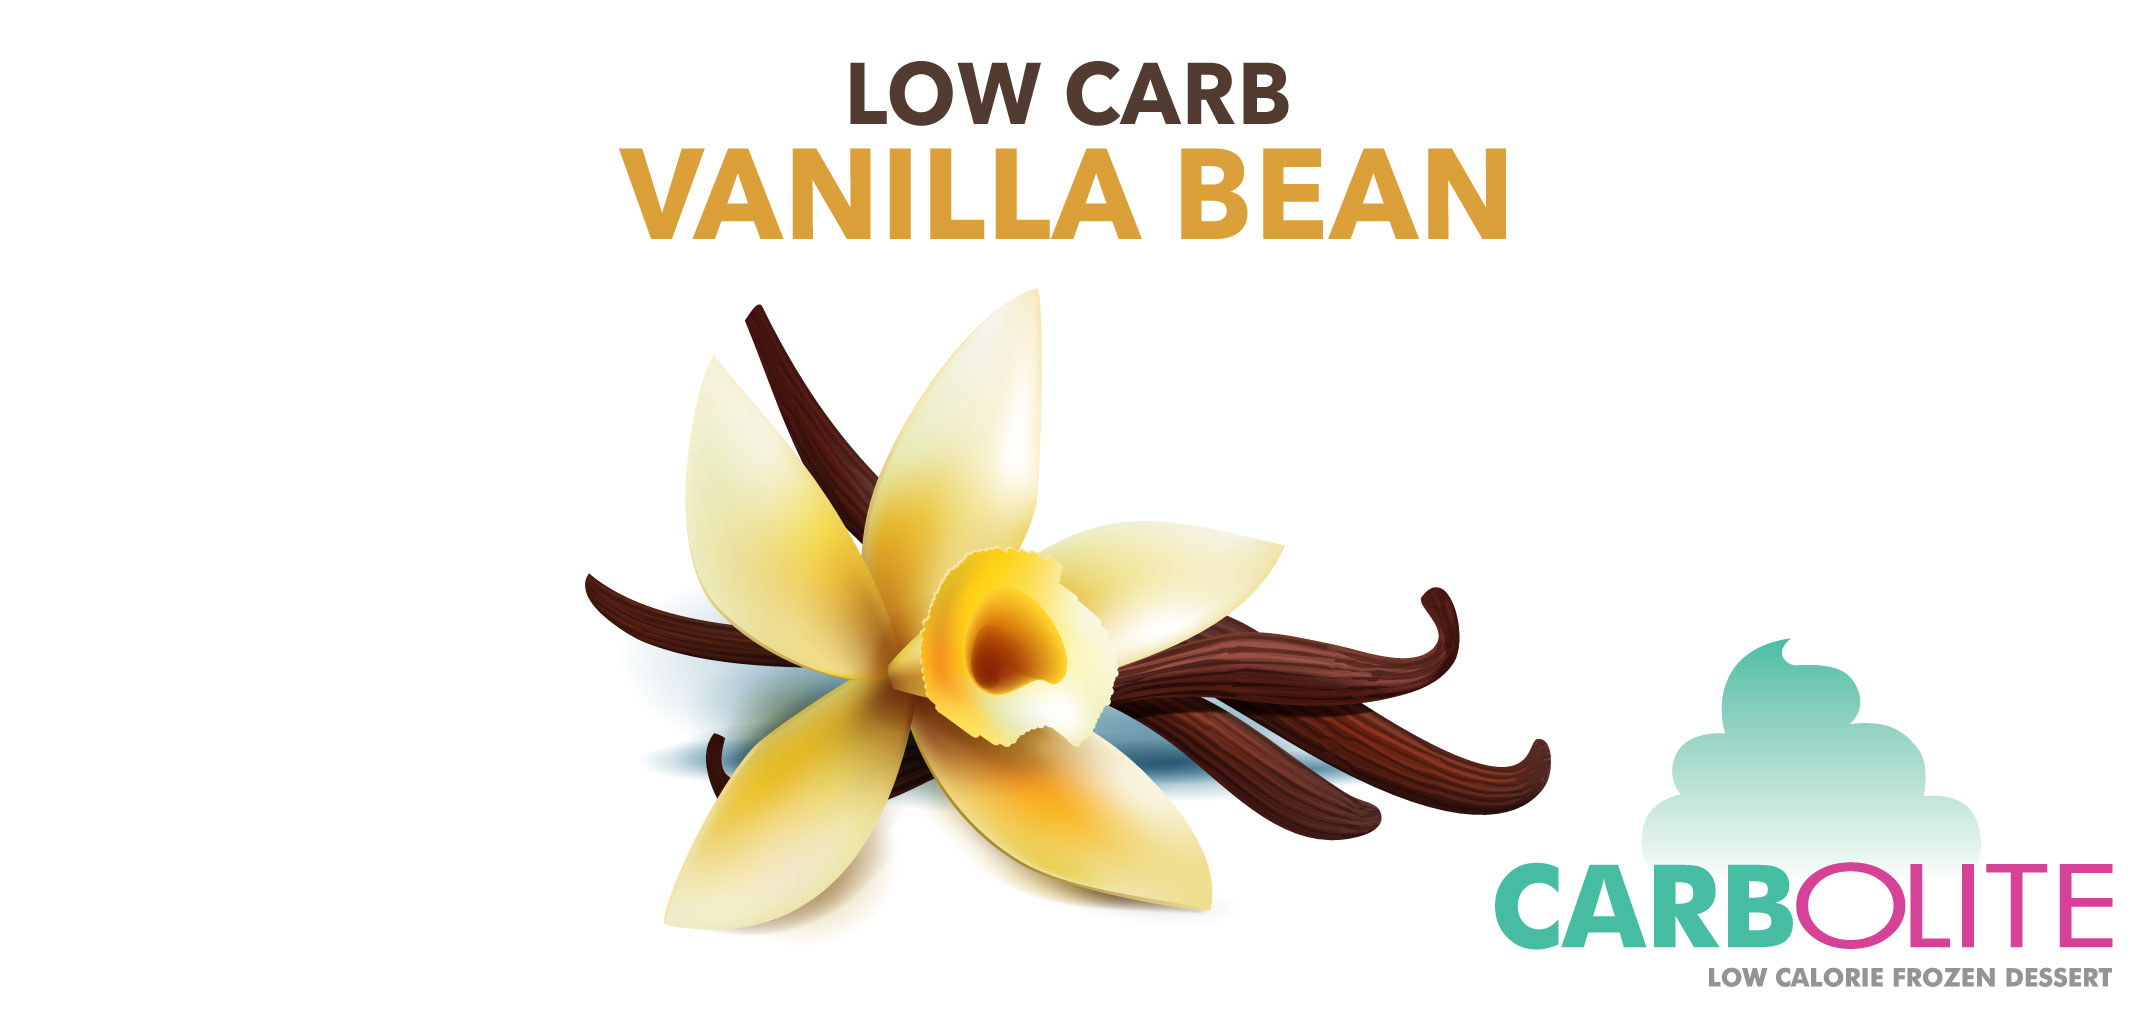 carbolite low carb no sugar added vanilla bean label image